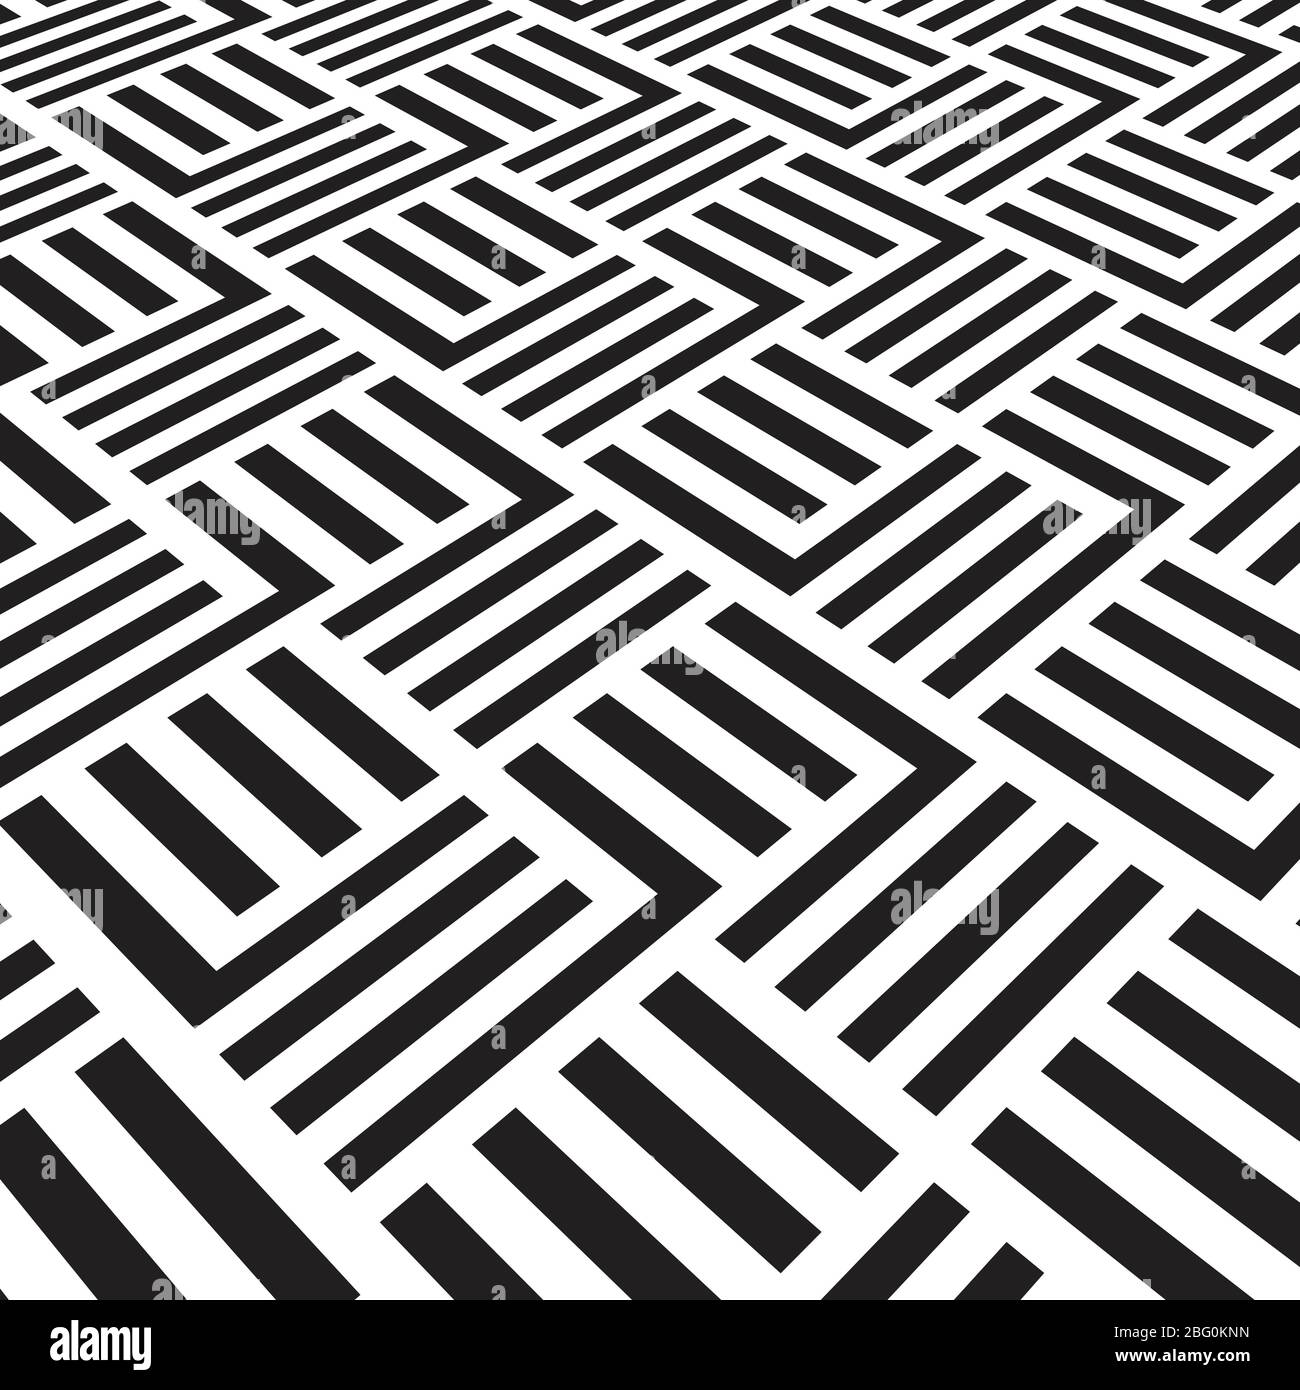 Black And White Geometric Pattern With Stripes Vector Striped Carpet Wallpaper Illustration Of Tile Pattern Ot Carpet Stock Vector Image Art Alamy